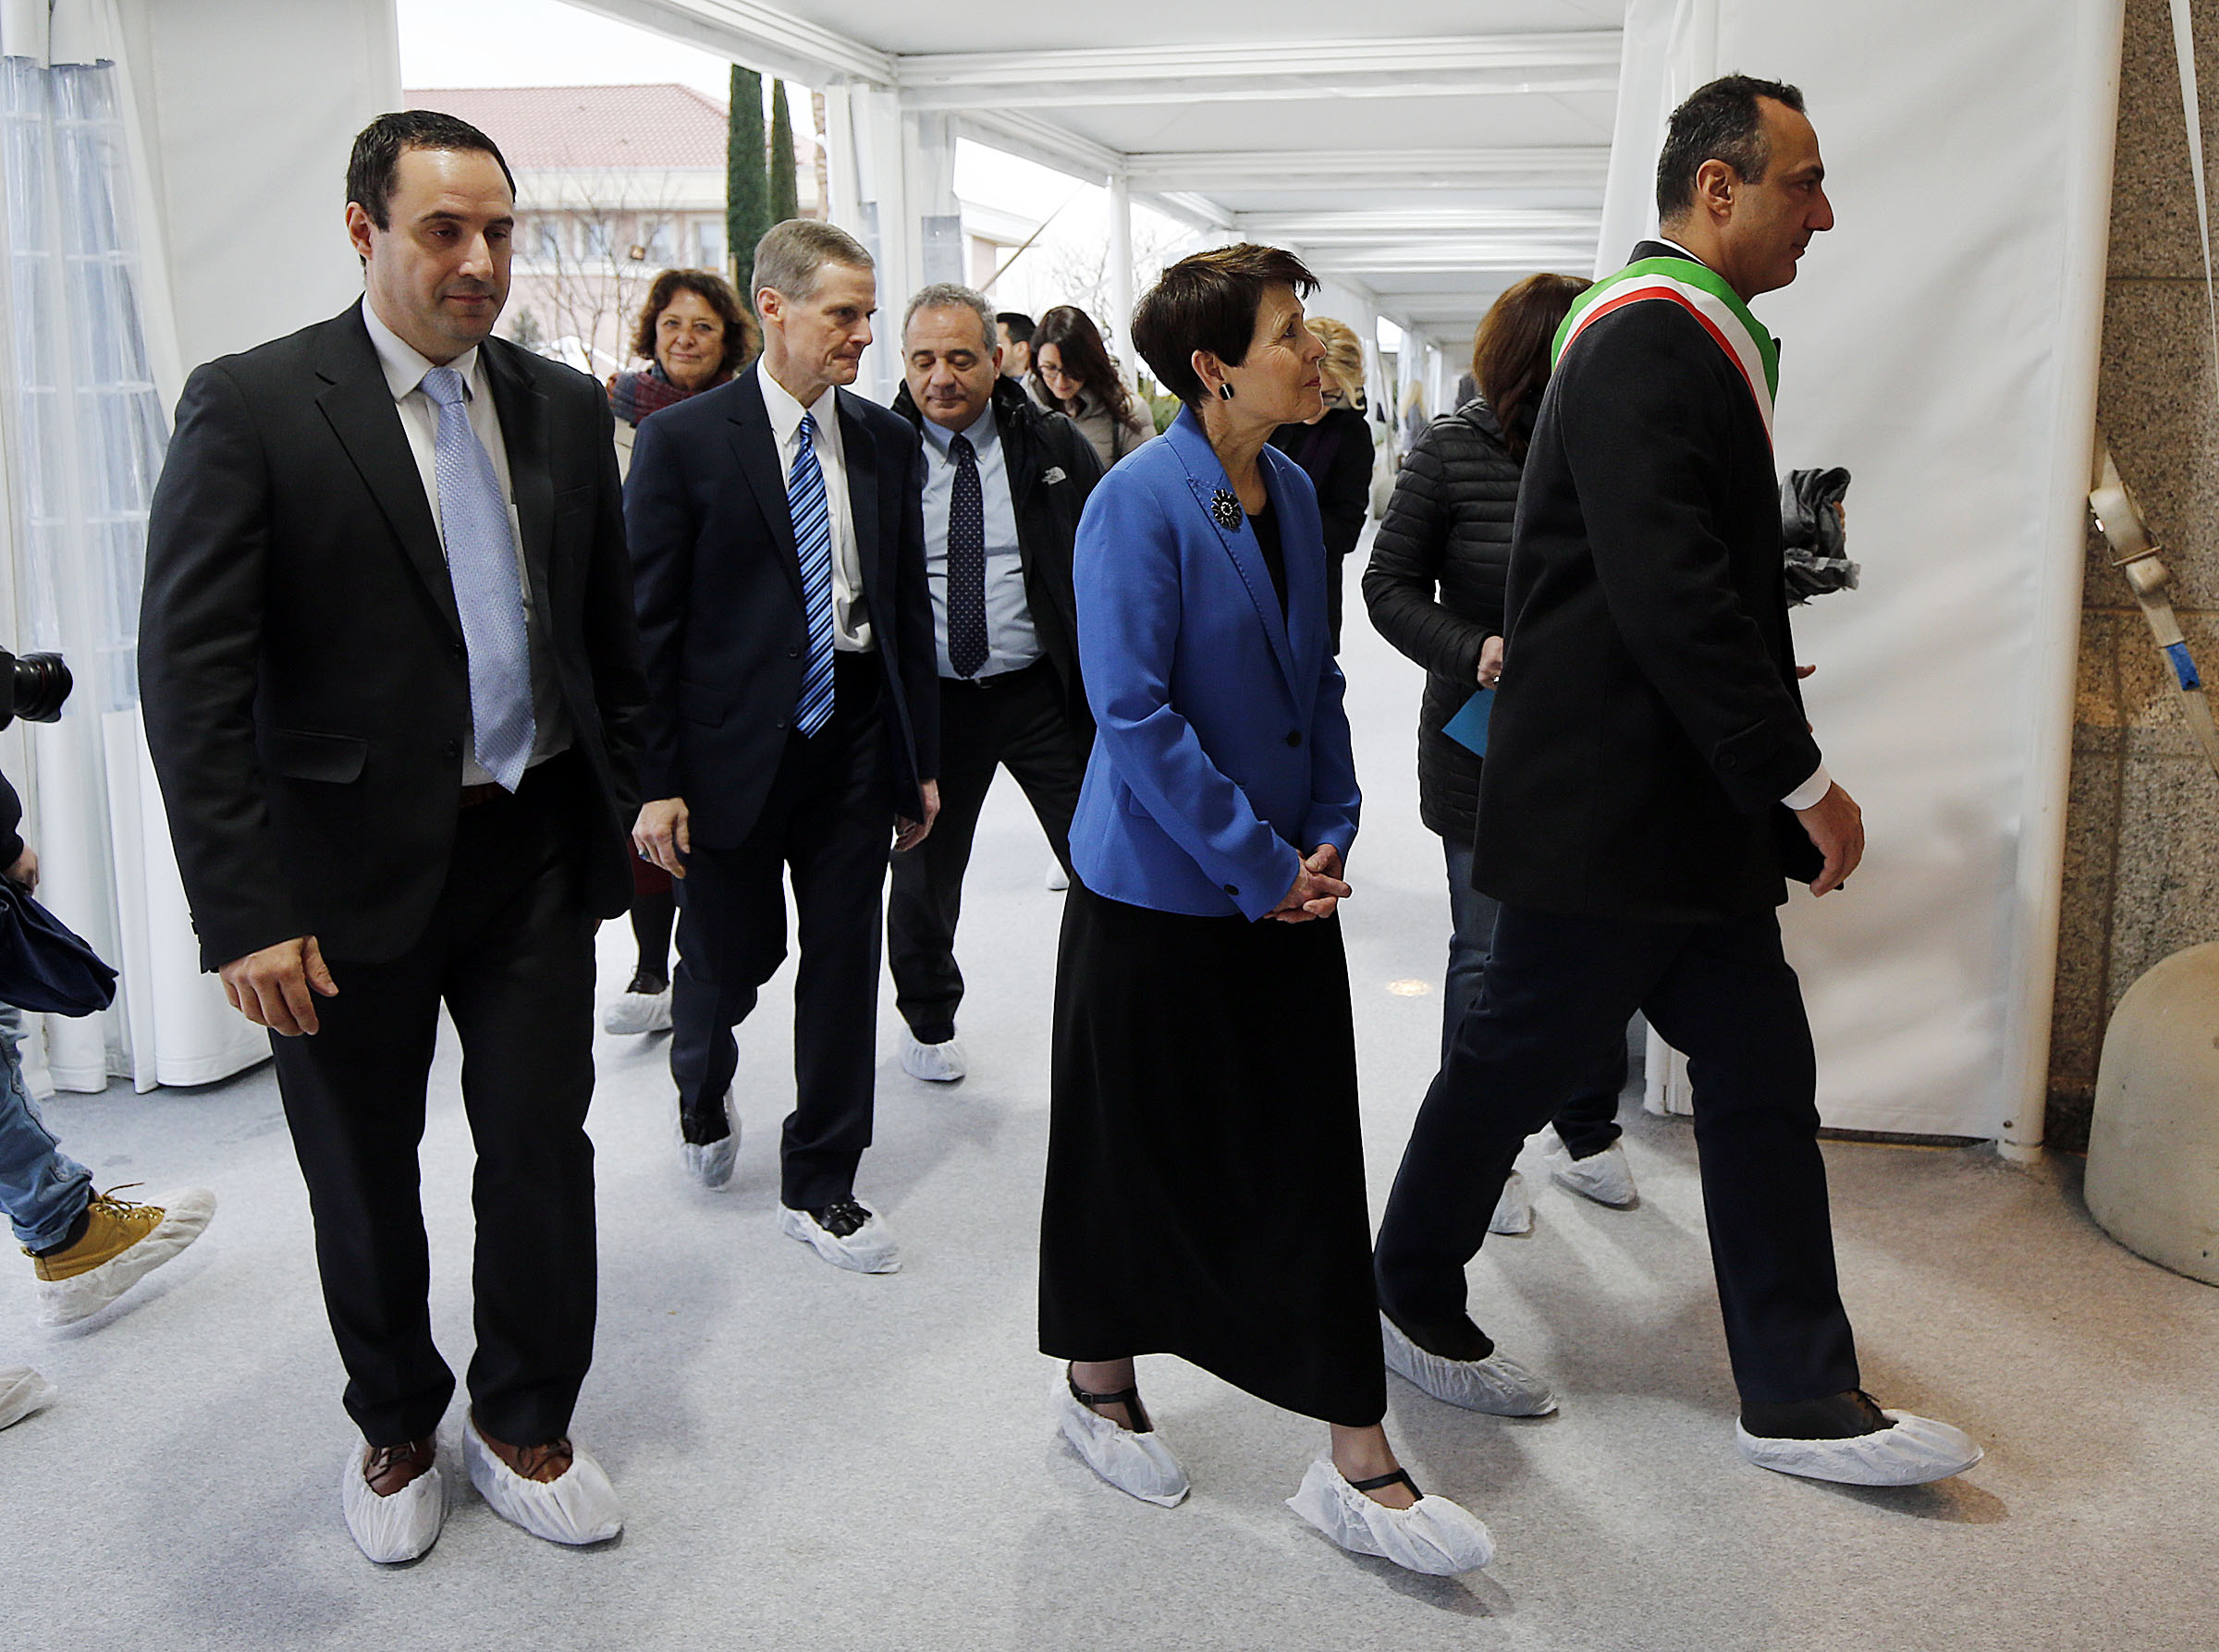 Elder David A. Bednar of the Quorum of the Twelve Apostles of The Church of Jesus Christ of Latter-day Saints and his wife, Sister Susan Bednar, lead a tour of local dignitaries into the Rome Italy Temple on Monday, Jan. 14, 2019.